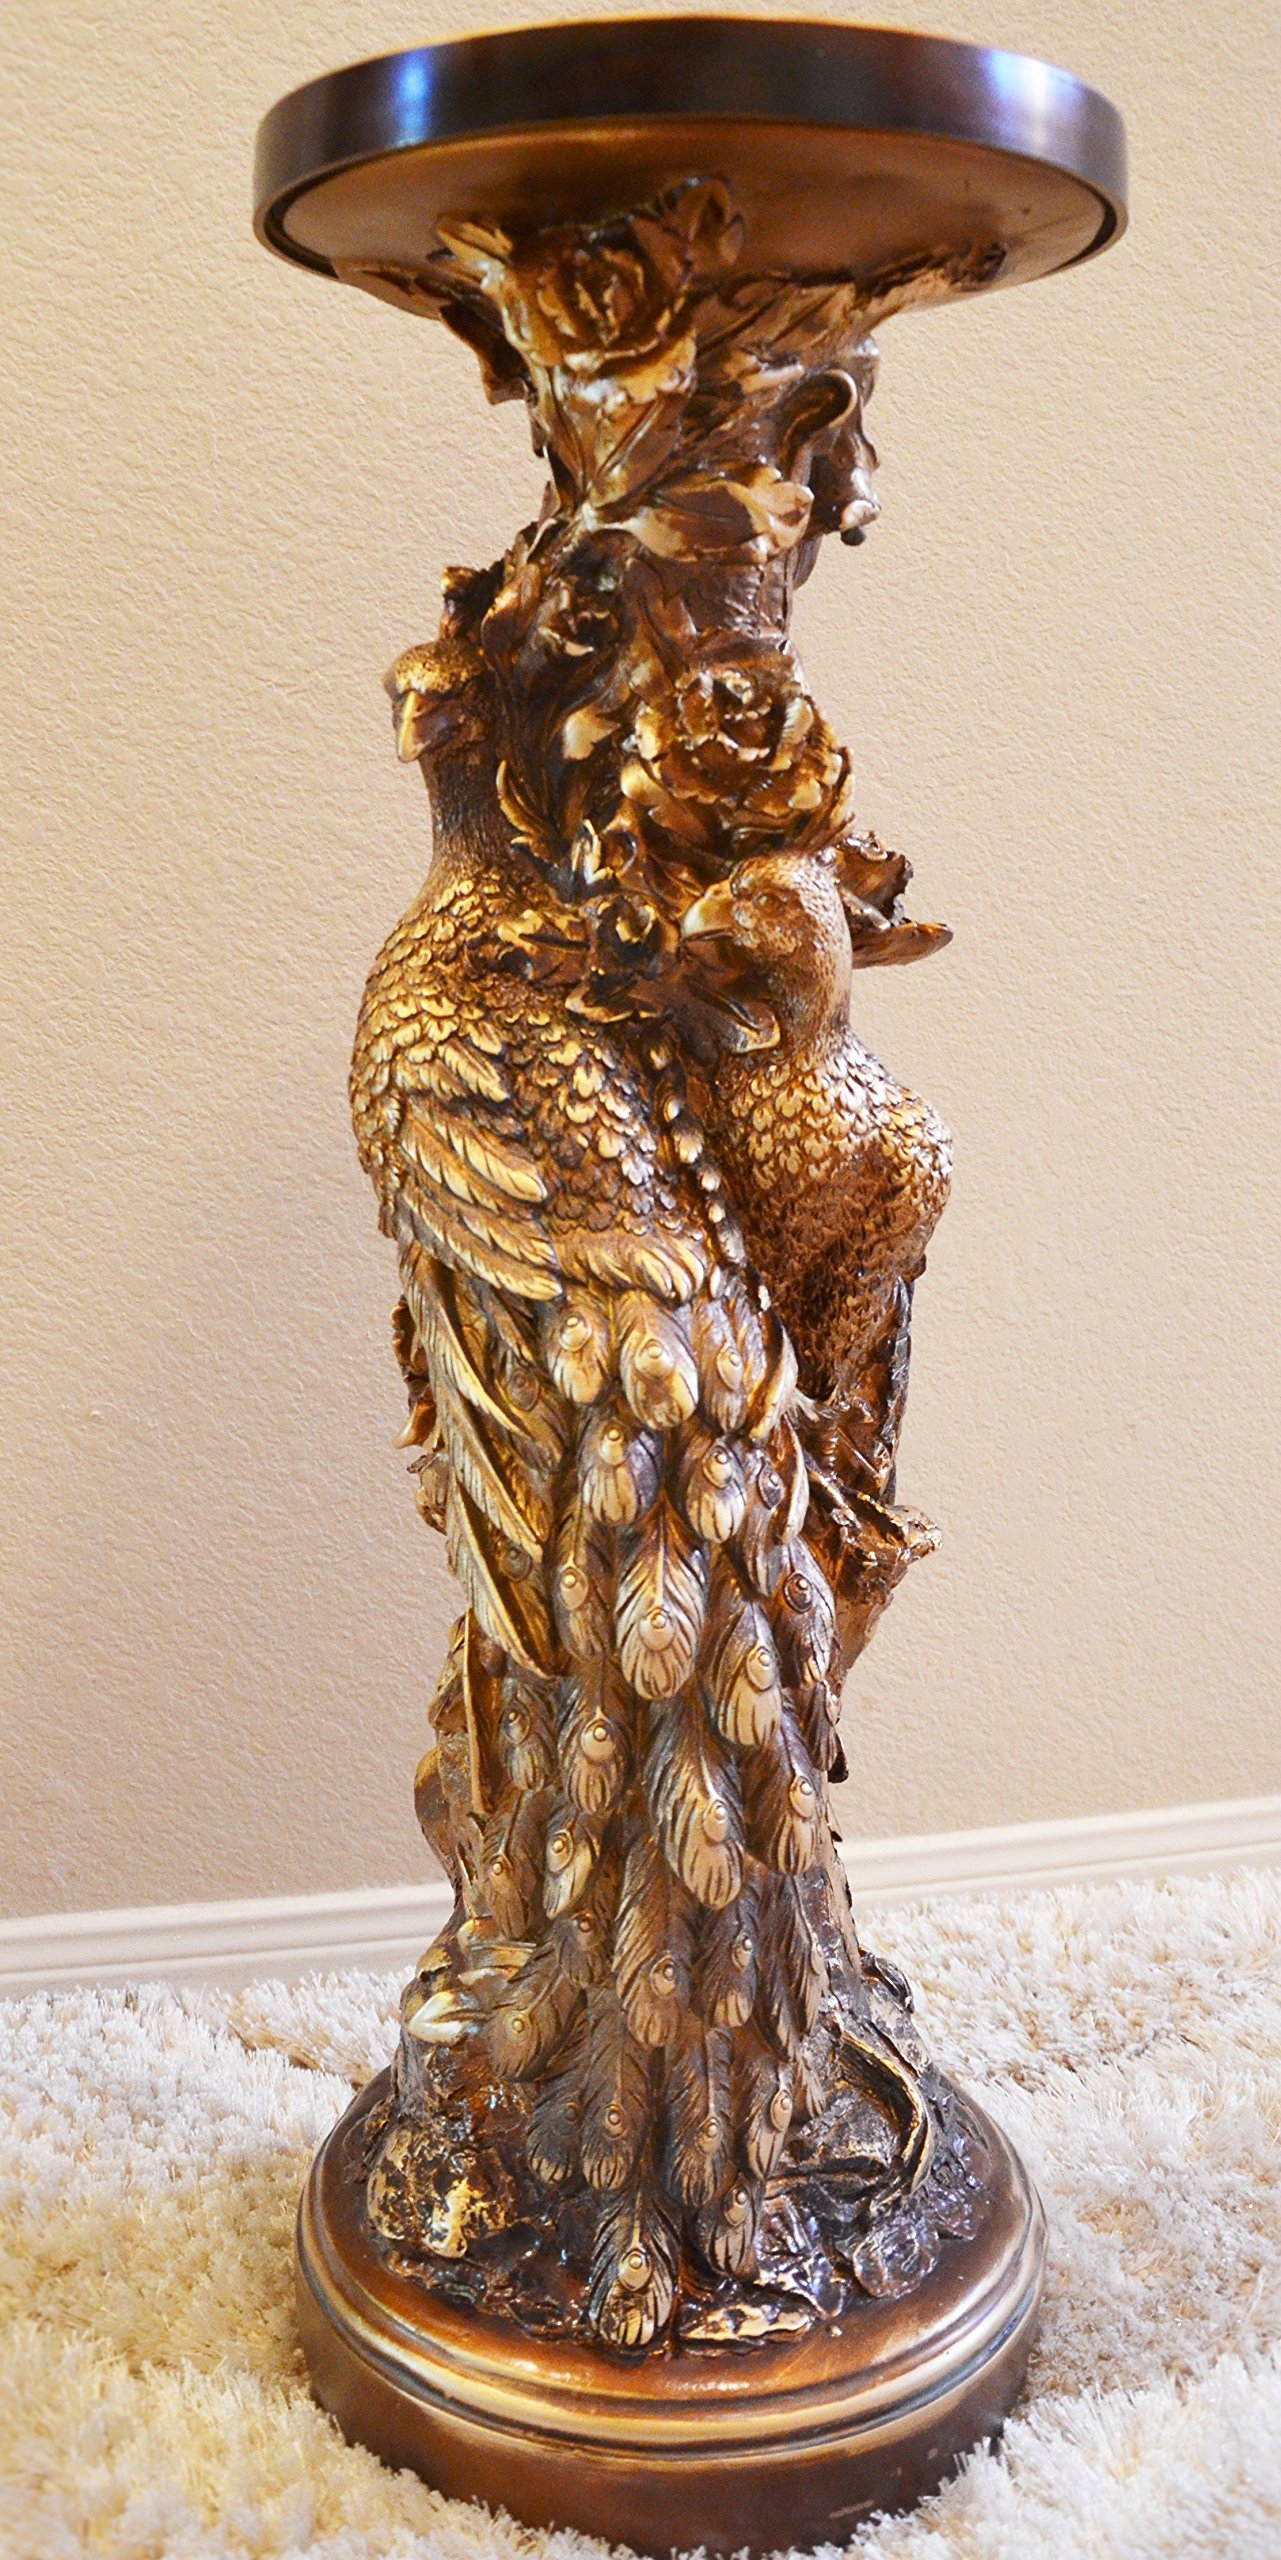 Golden Floor Table Stand Furniture Pedestal Post Column Interior Decor Carved Peacocks Statue Sculpture by Troy Decor